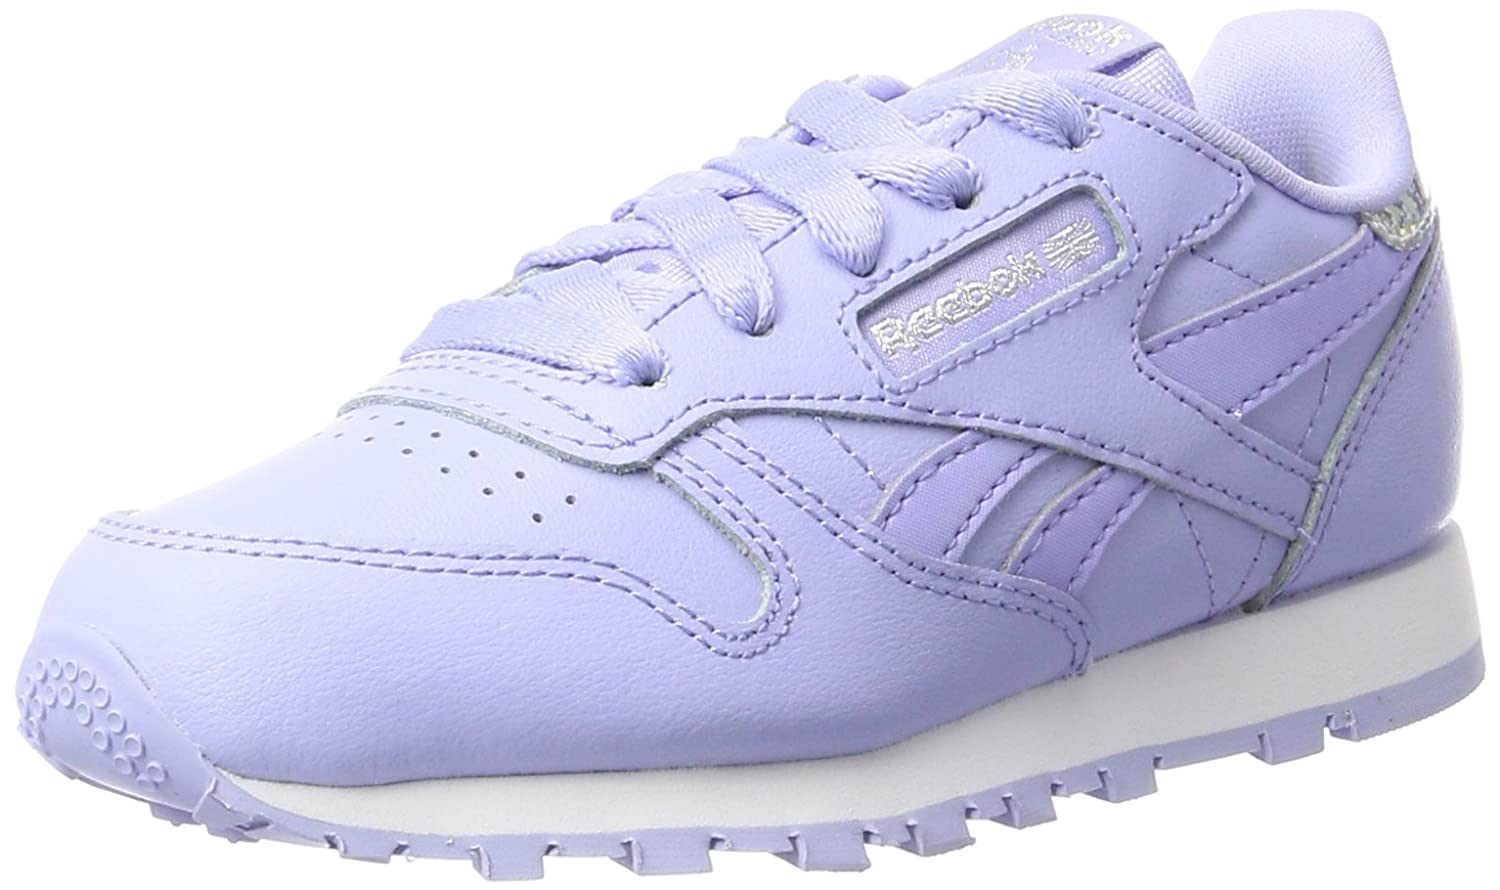 bs8972 uk size 5 pink reebok classic trainers